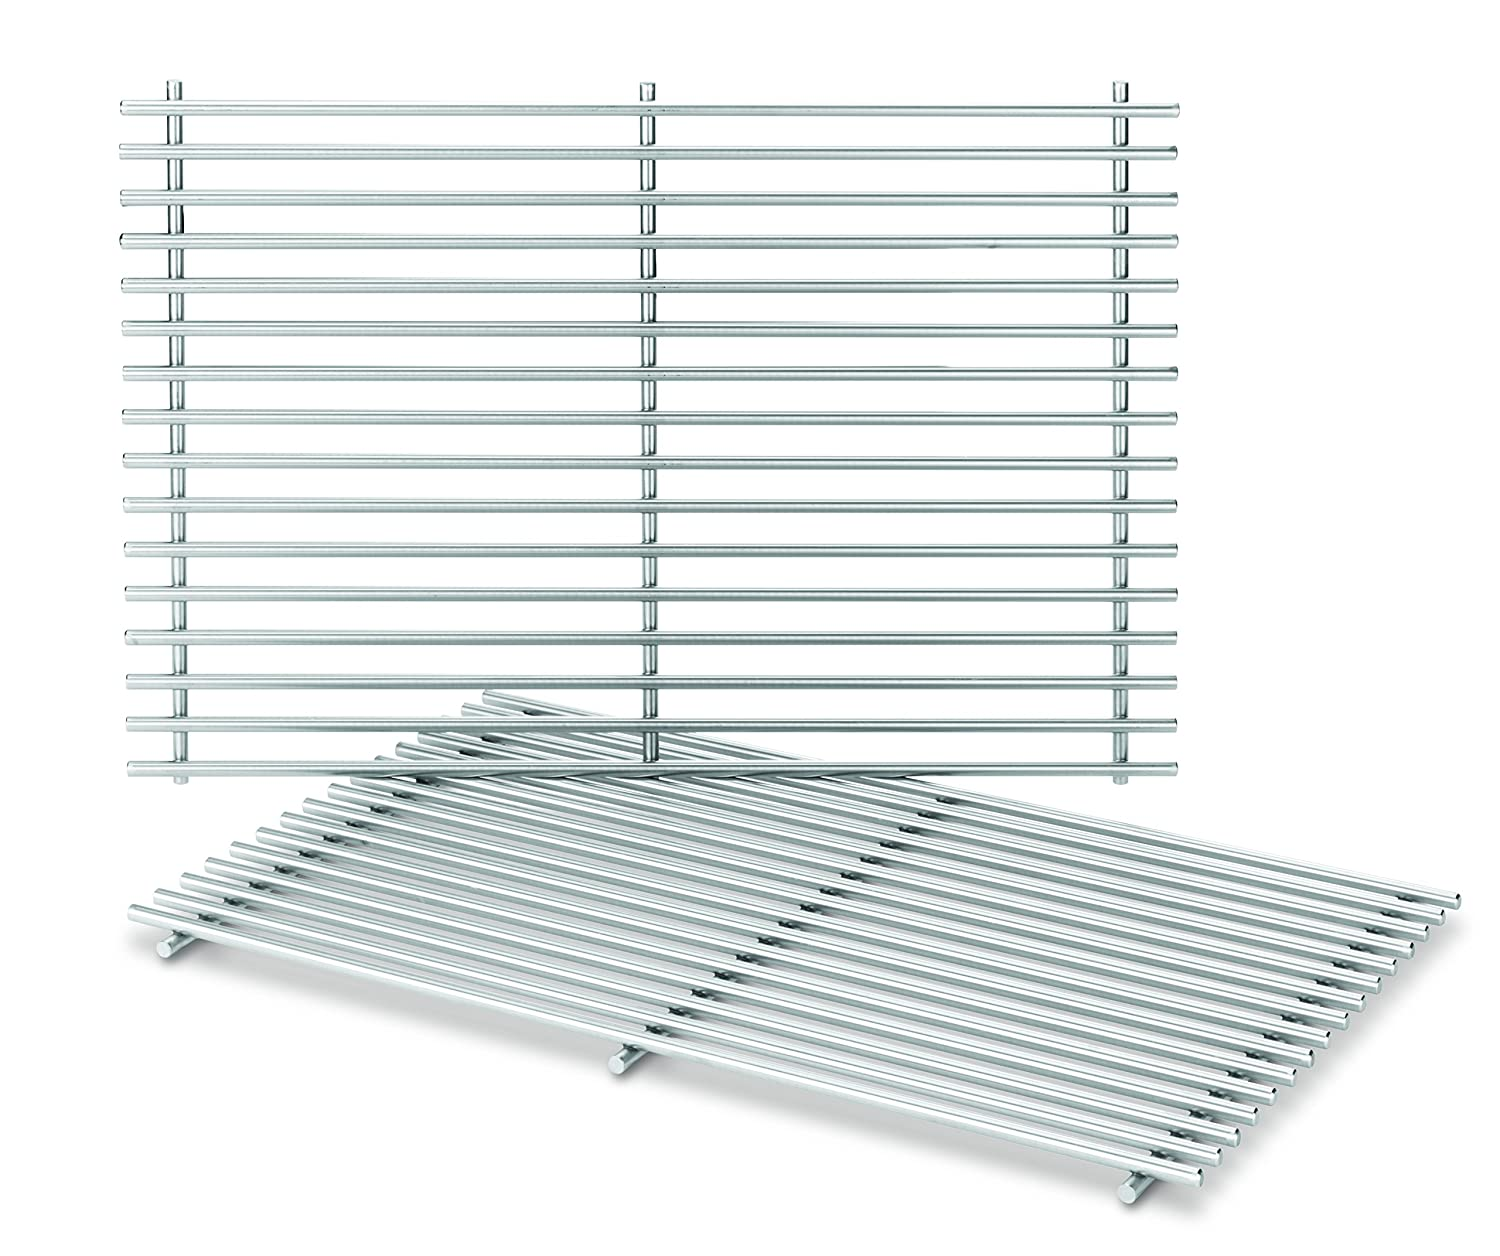 Weber 7639 Stainless Steel Cooking Grates for Spirit 300 Series Gas Grills